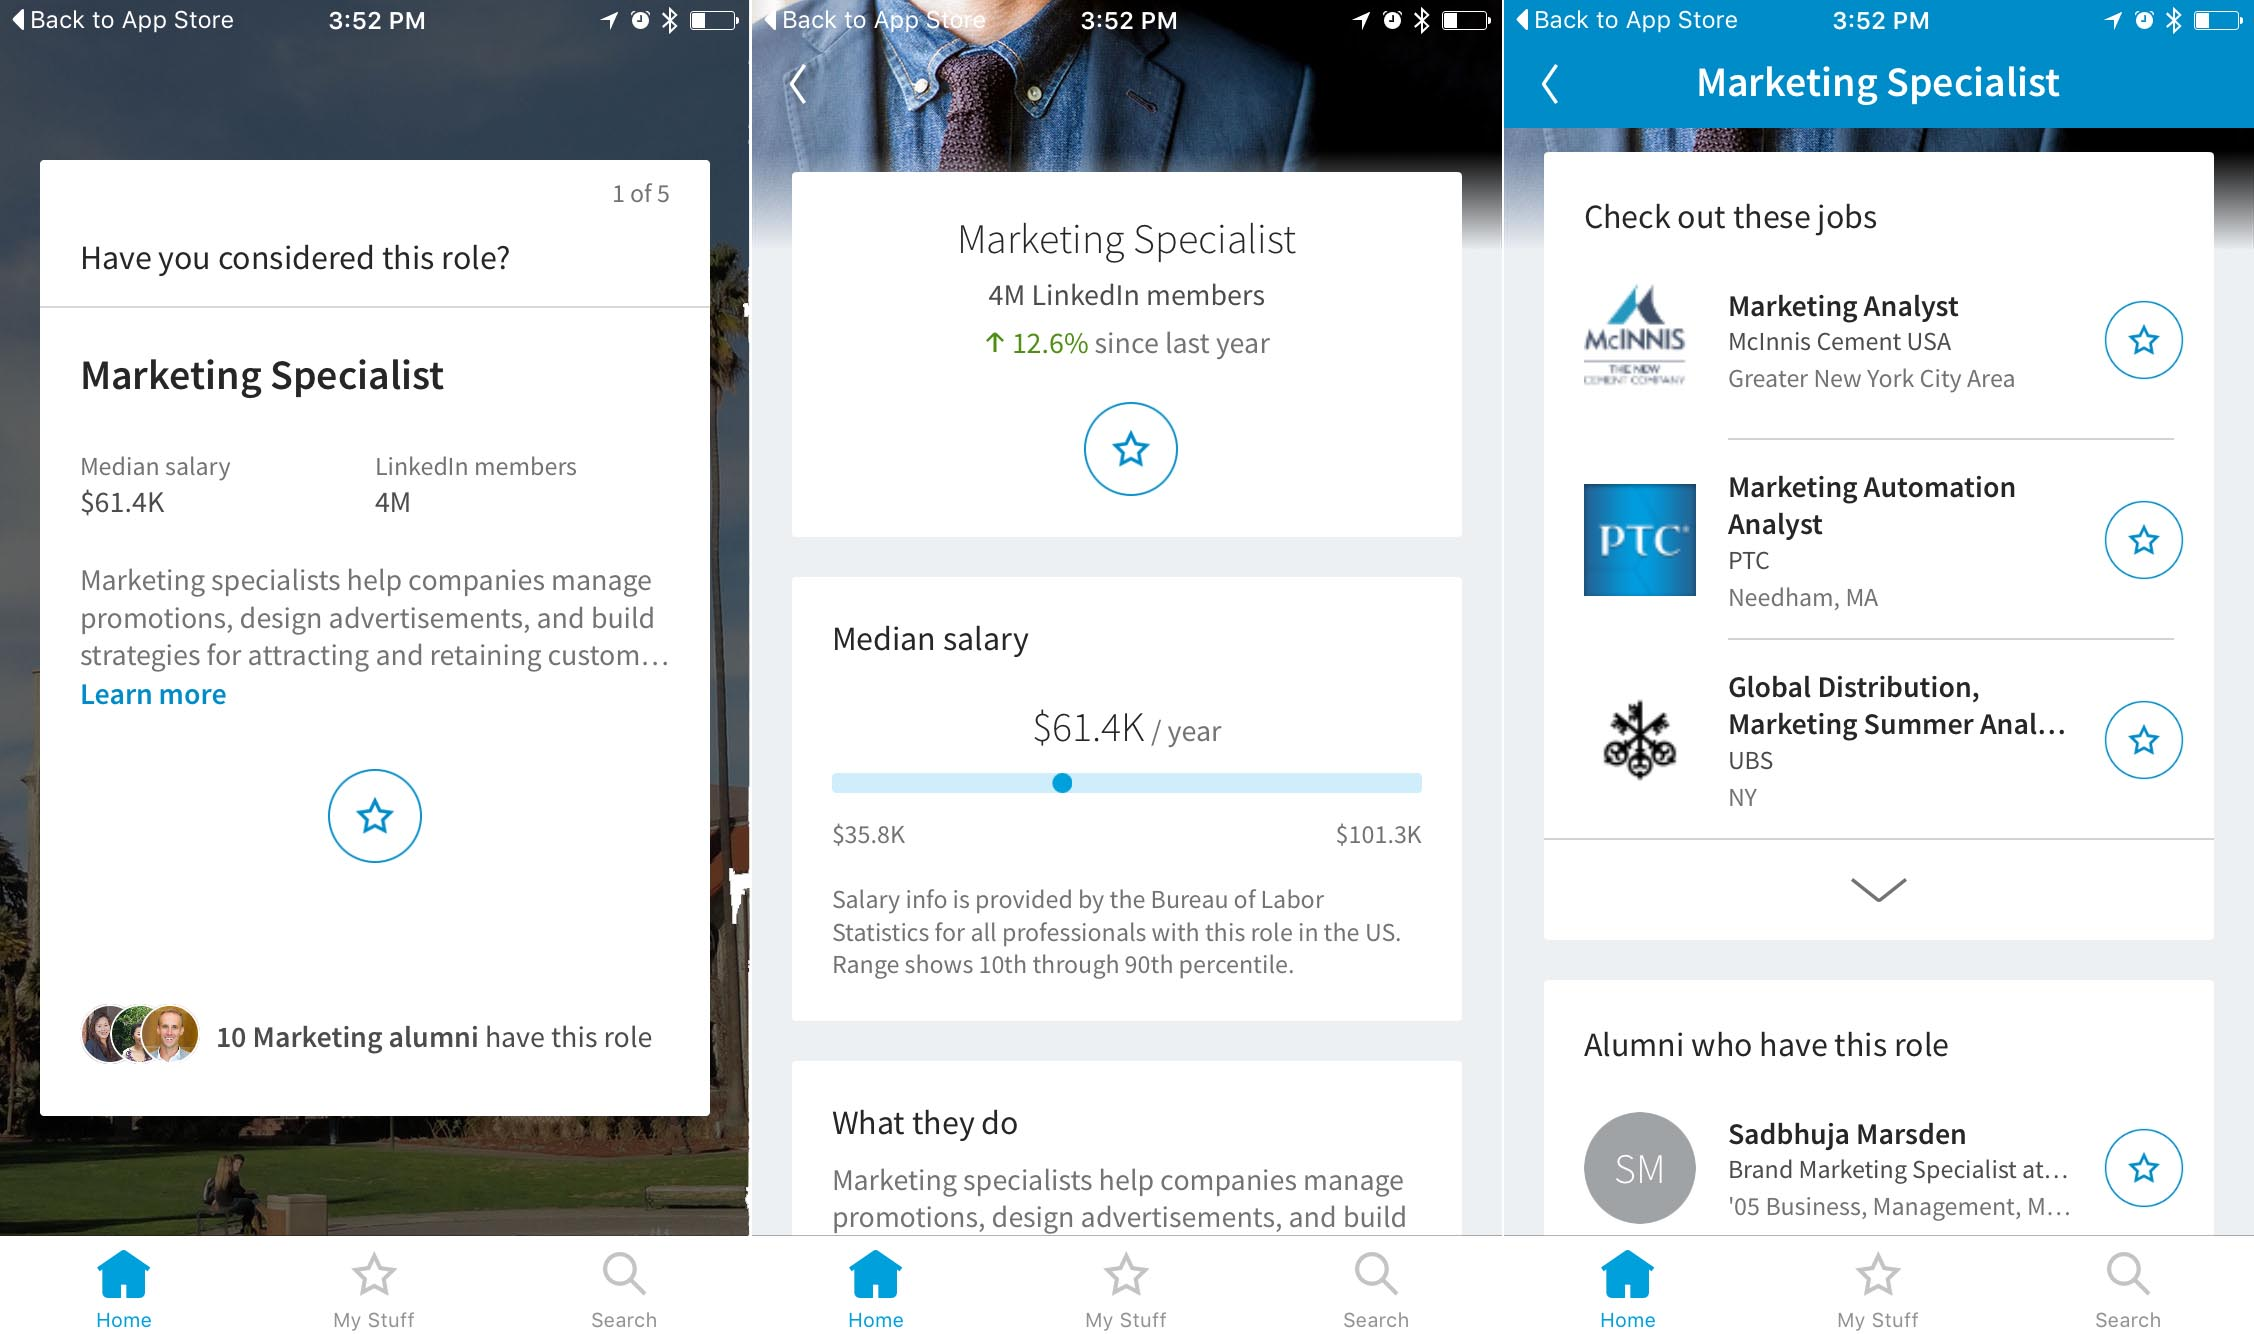 Screenshots of LinkedIn Students iOS app displaying what role you might be interested in.